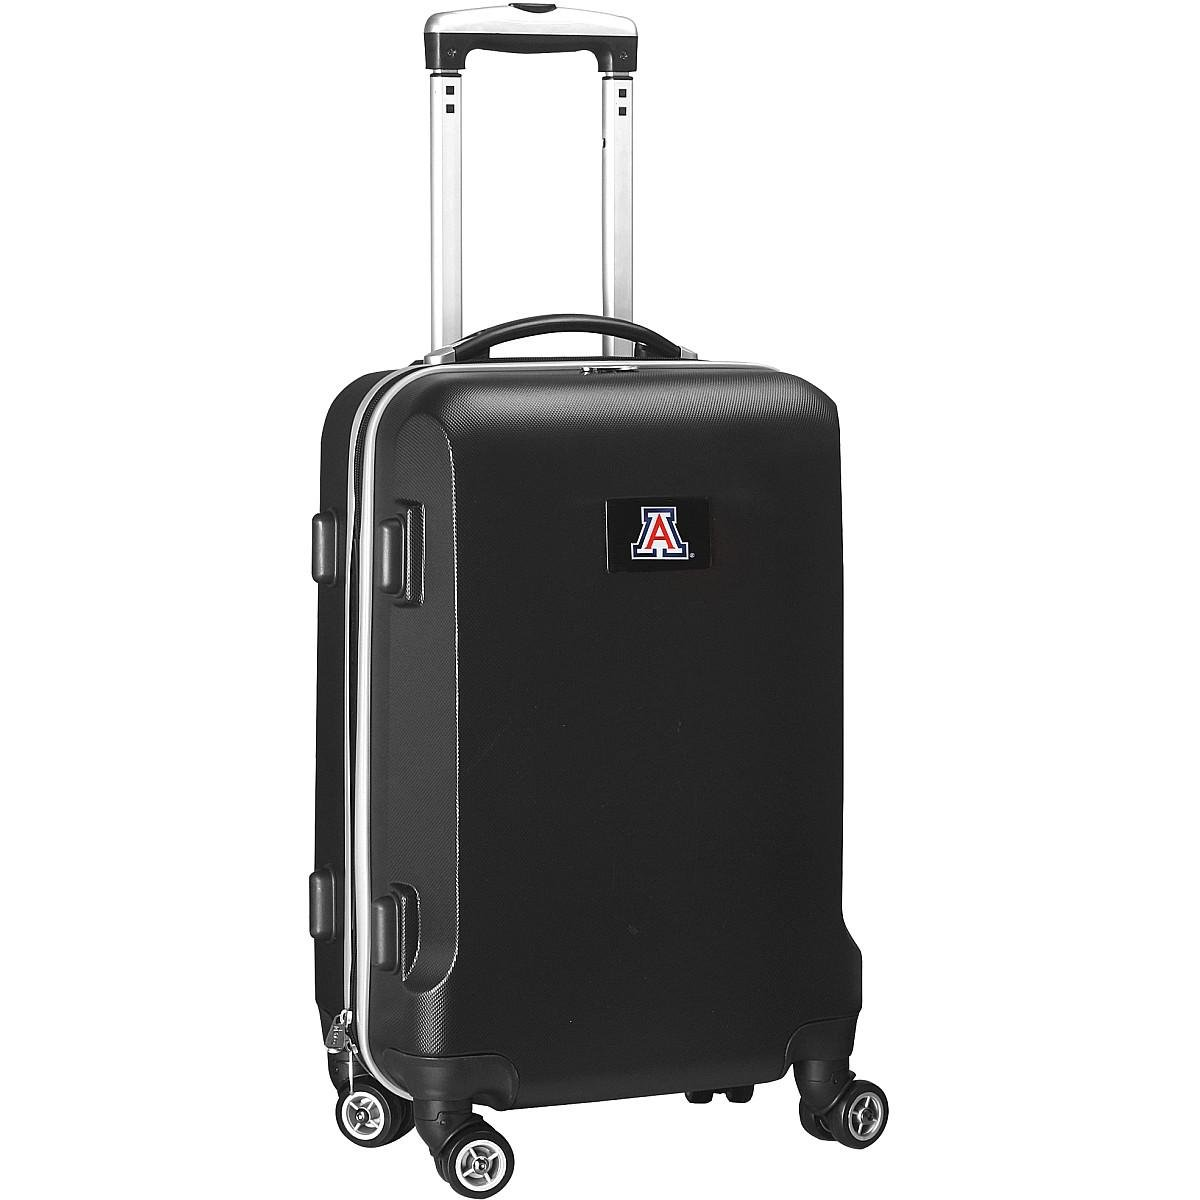 Denco NCAA Arizona Wildcats Carry-On Hardcase Luggage Spinner, Black